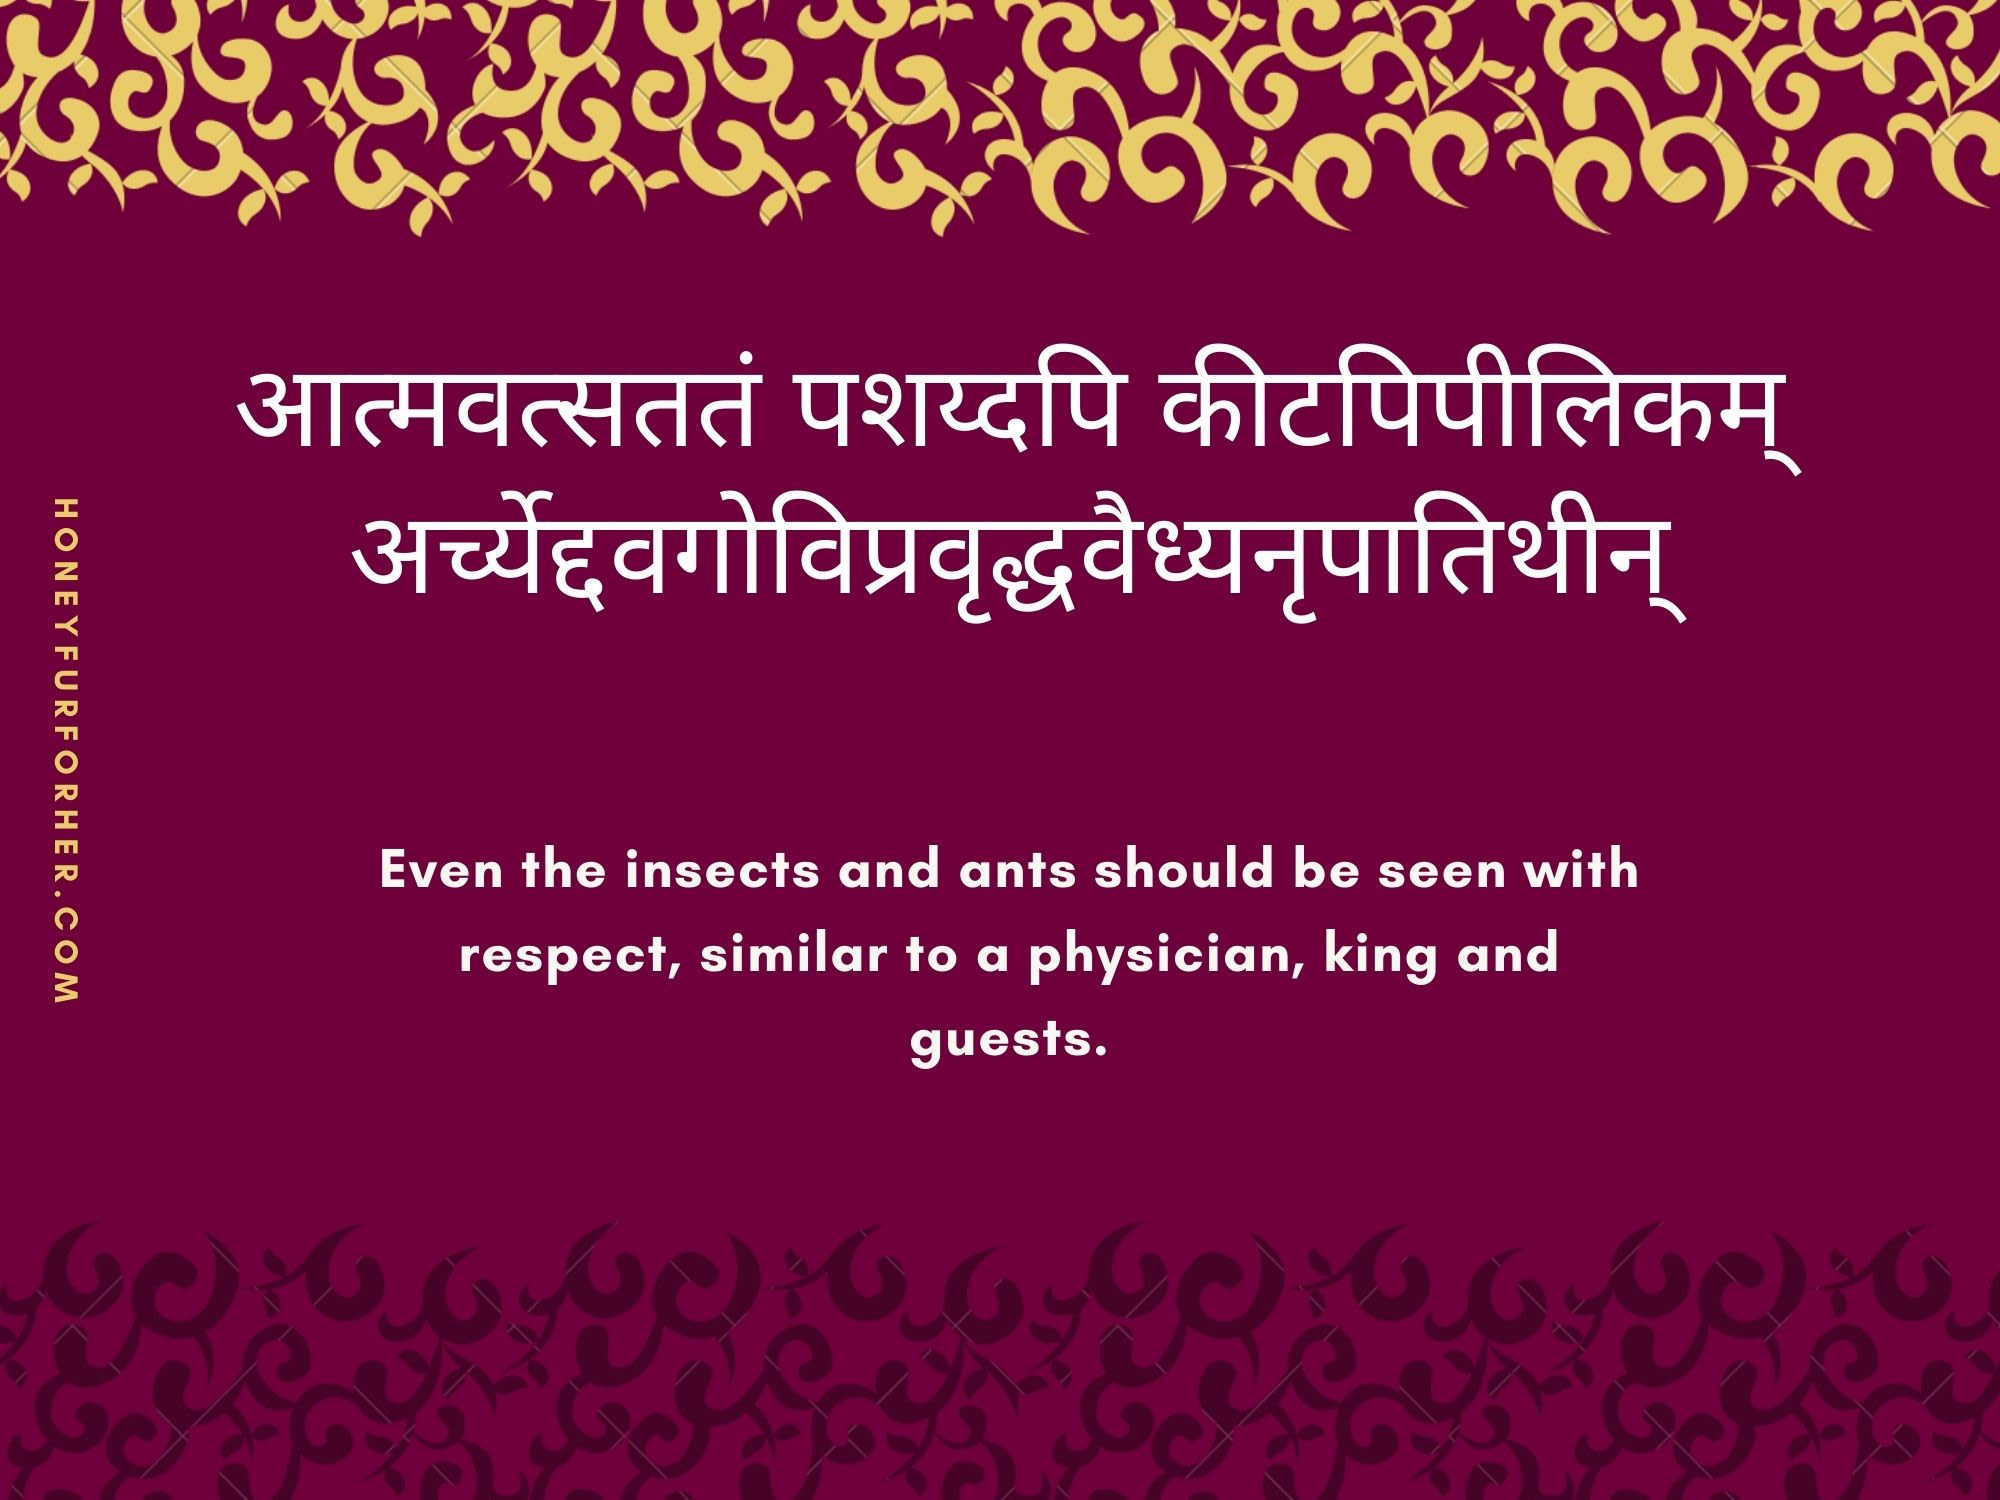 Ayurveda Quotes - Equal Treatment To All